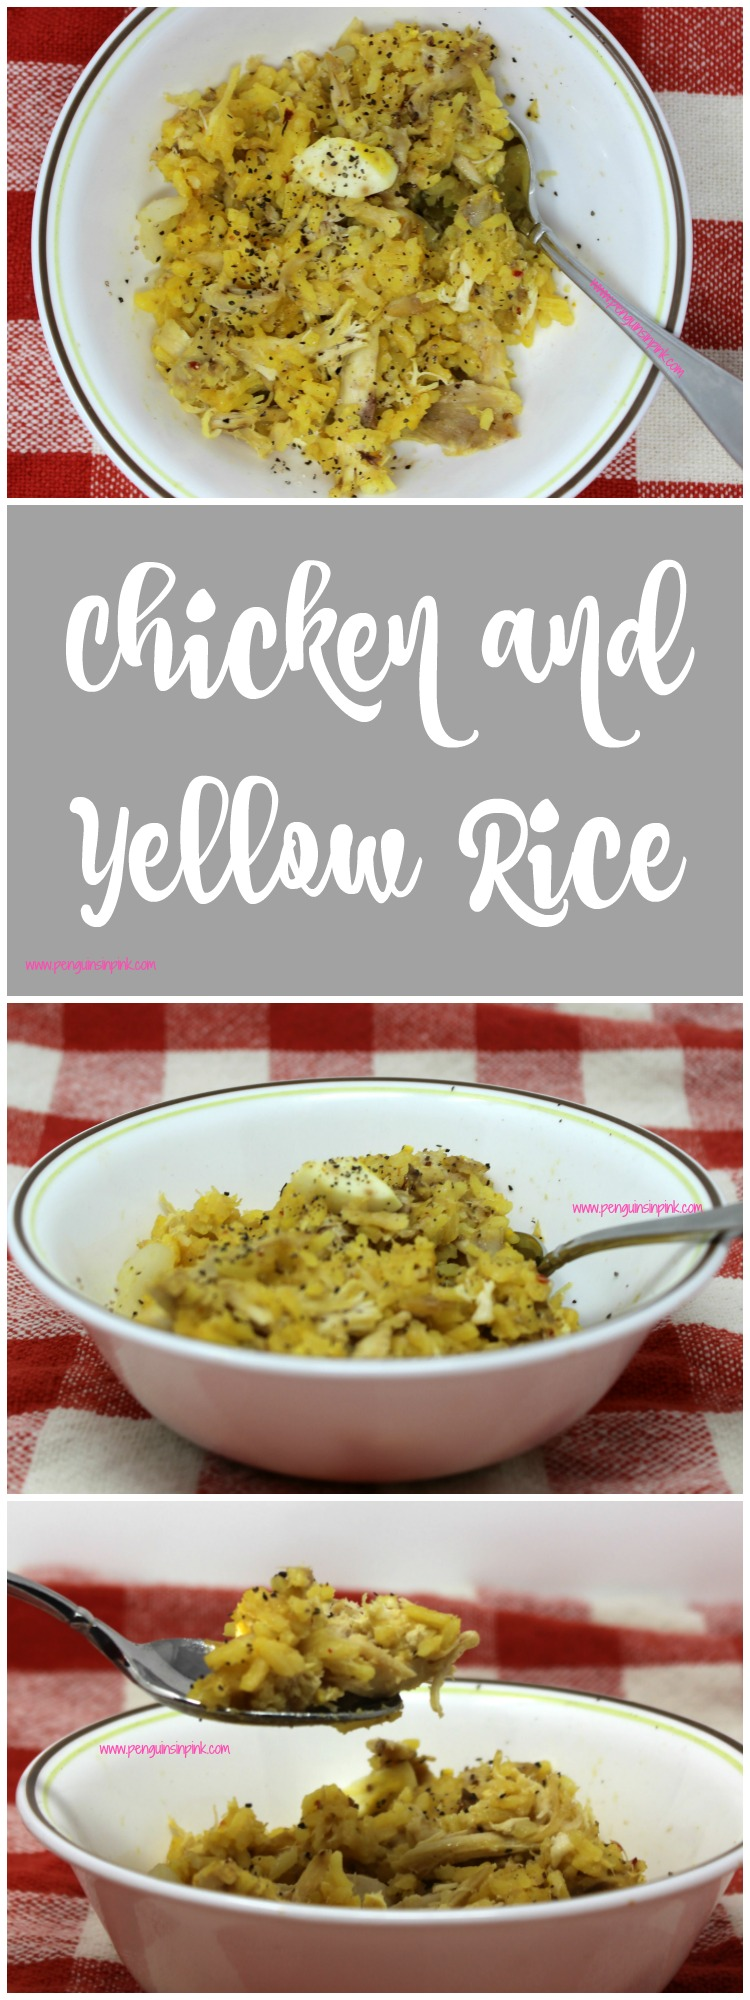 Chicken and Yellow Rice - A hearty, dish filled with savory, saffron rice, juicy chicken, eggs, onions, and garlic for a soon to be family classic.